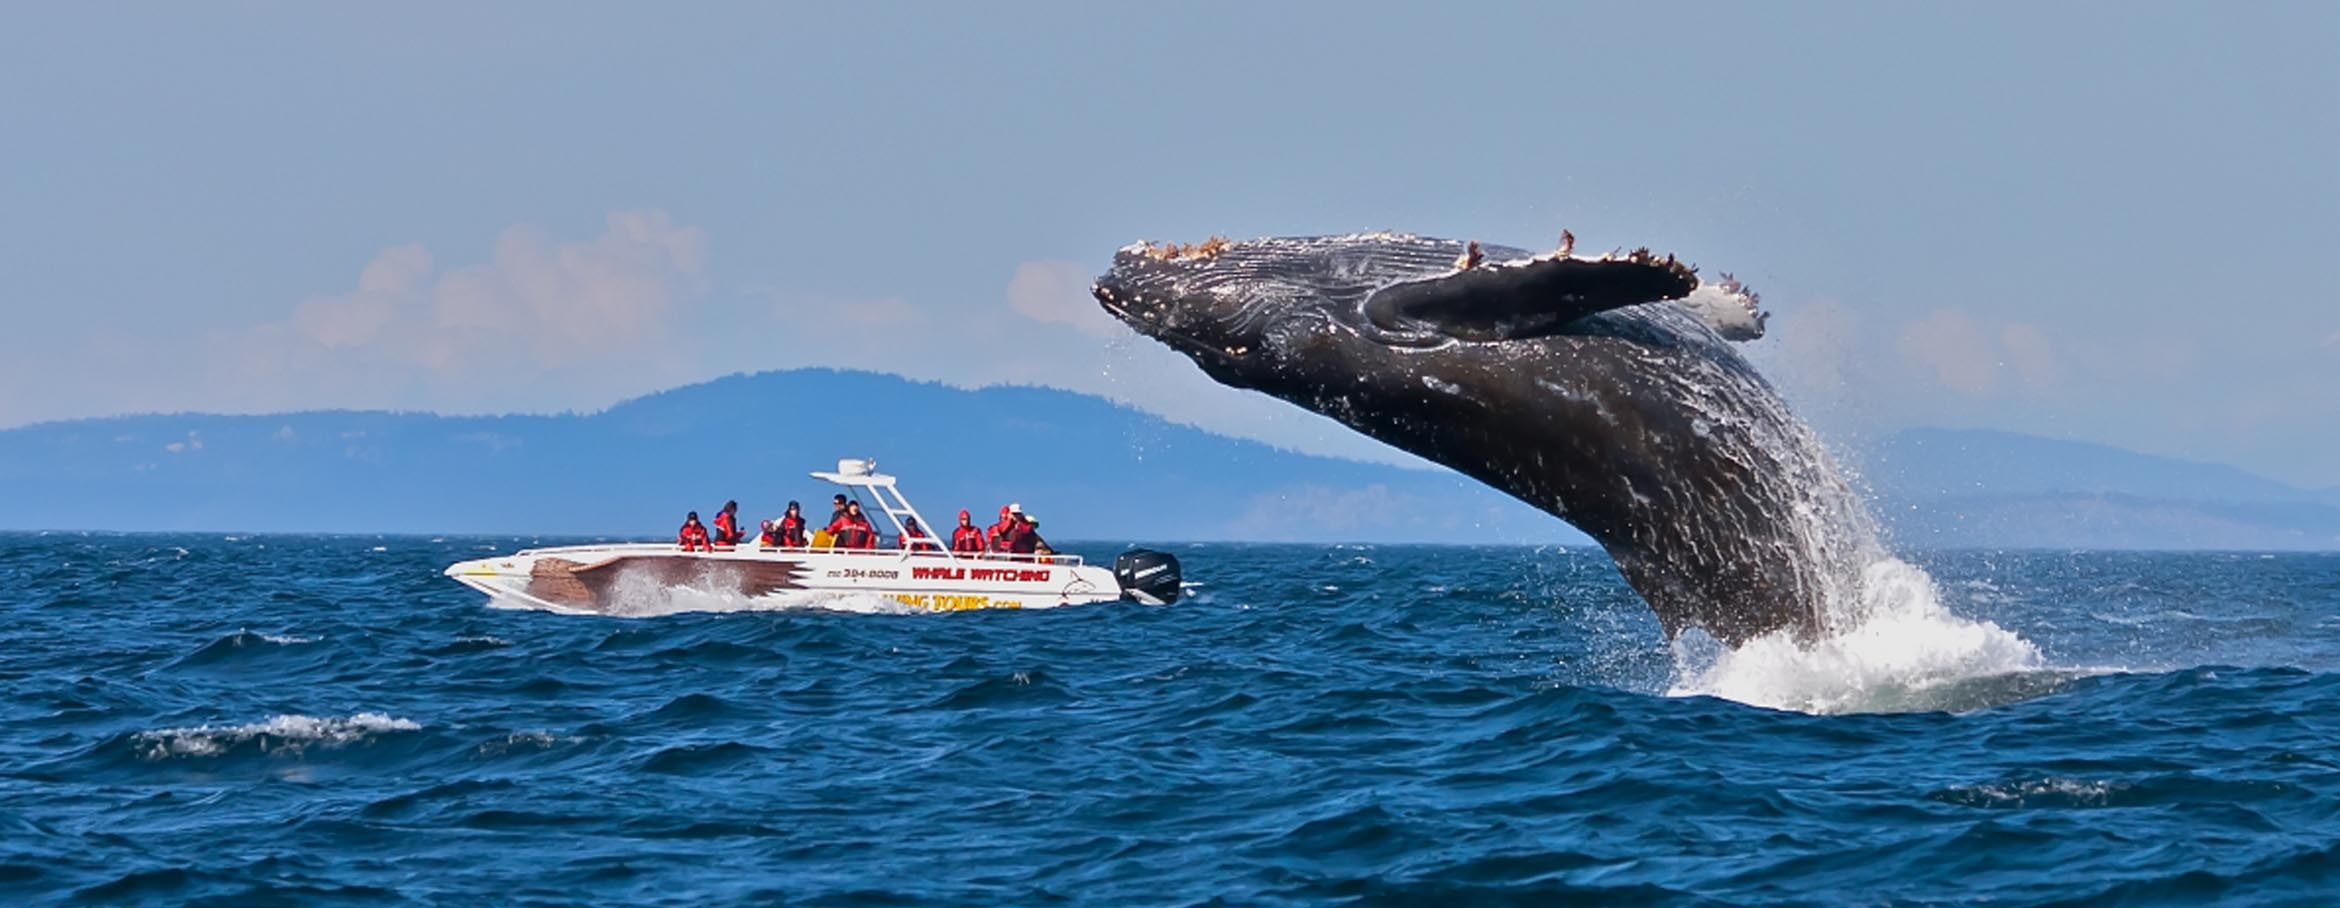 Mirissa-Best Whale Watching Place to visit in Sri Lanka